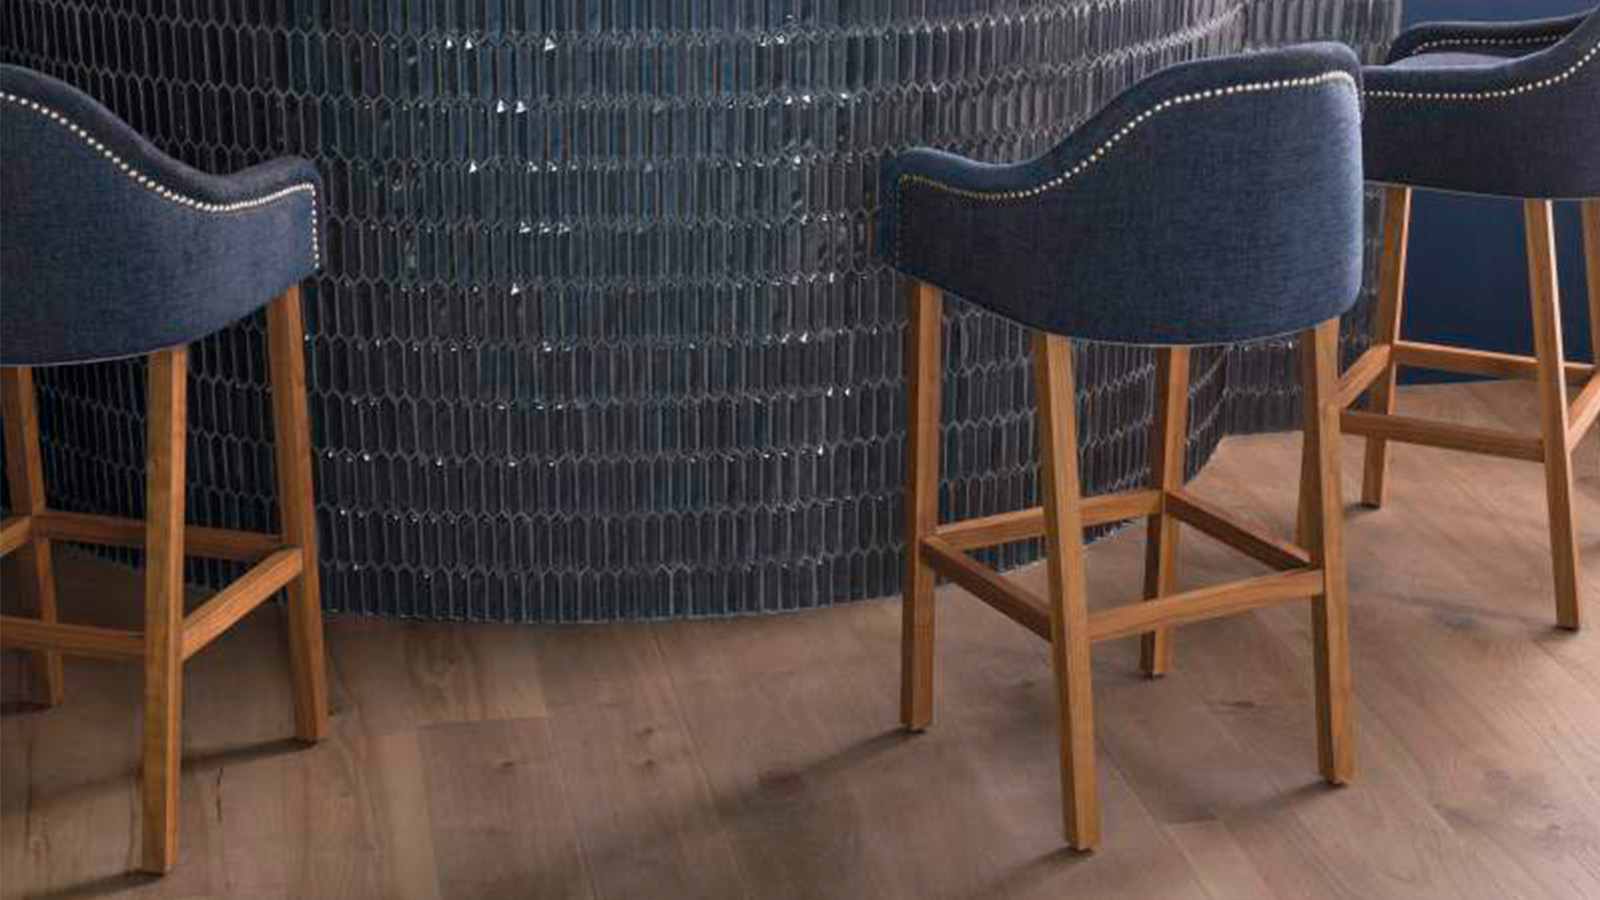 How to tile glass mosaics